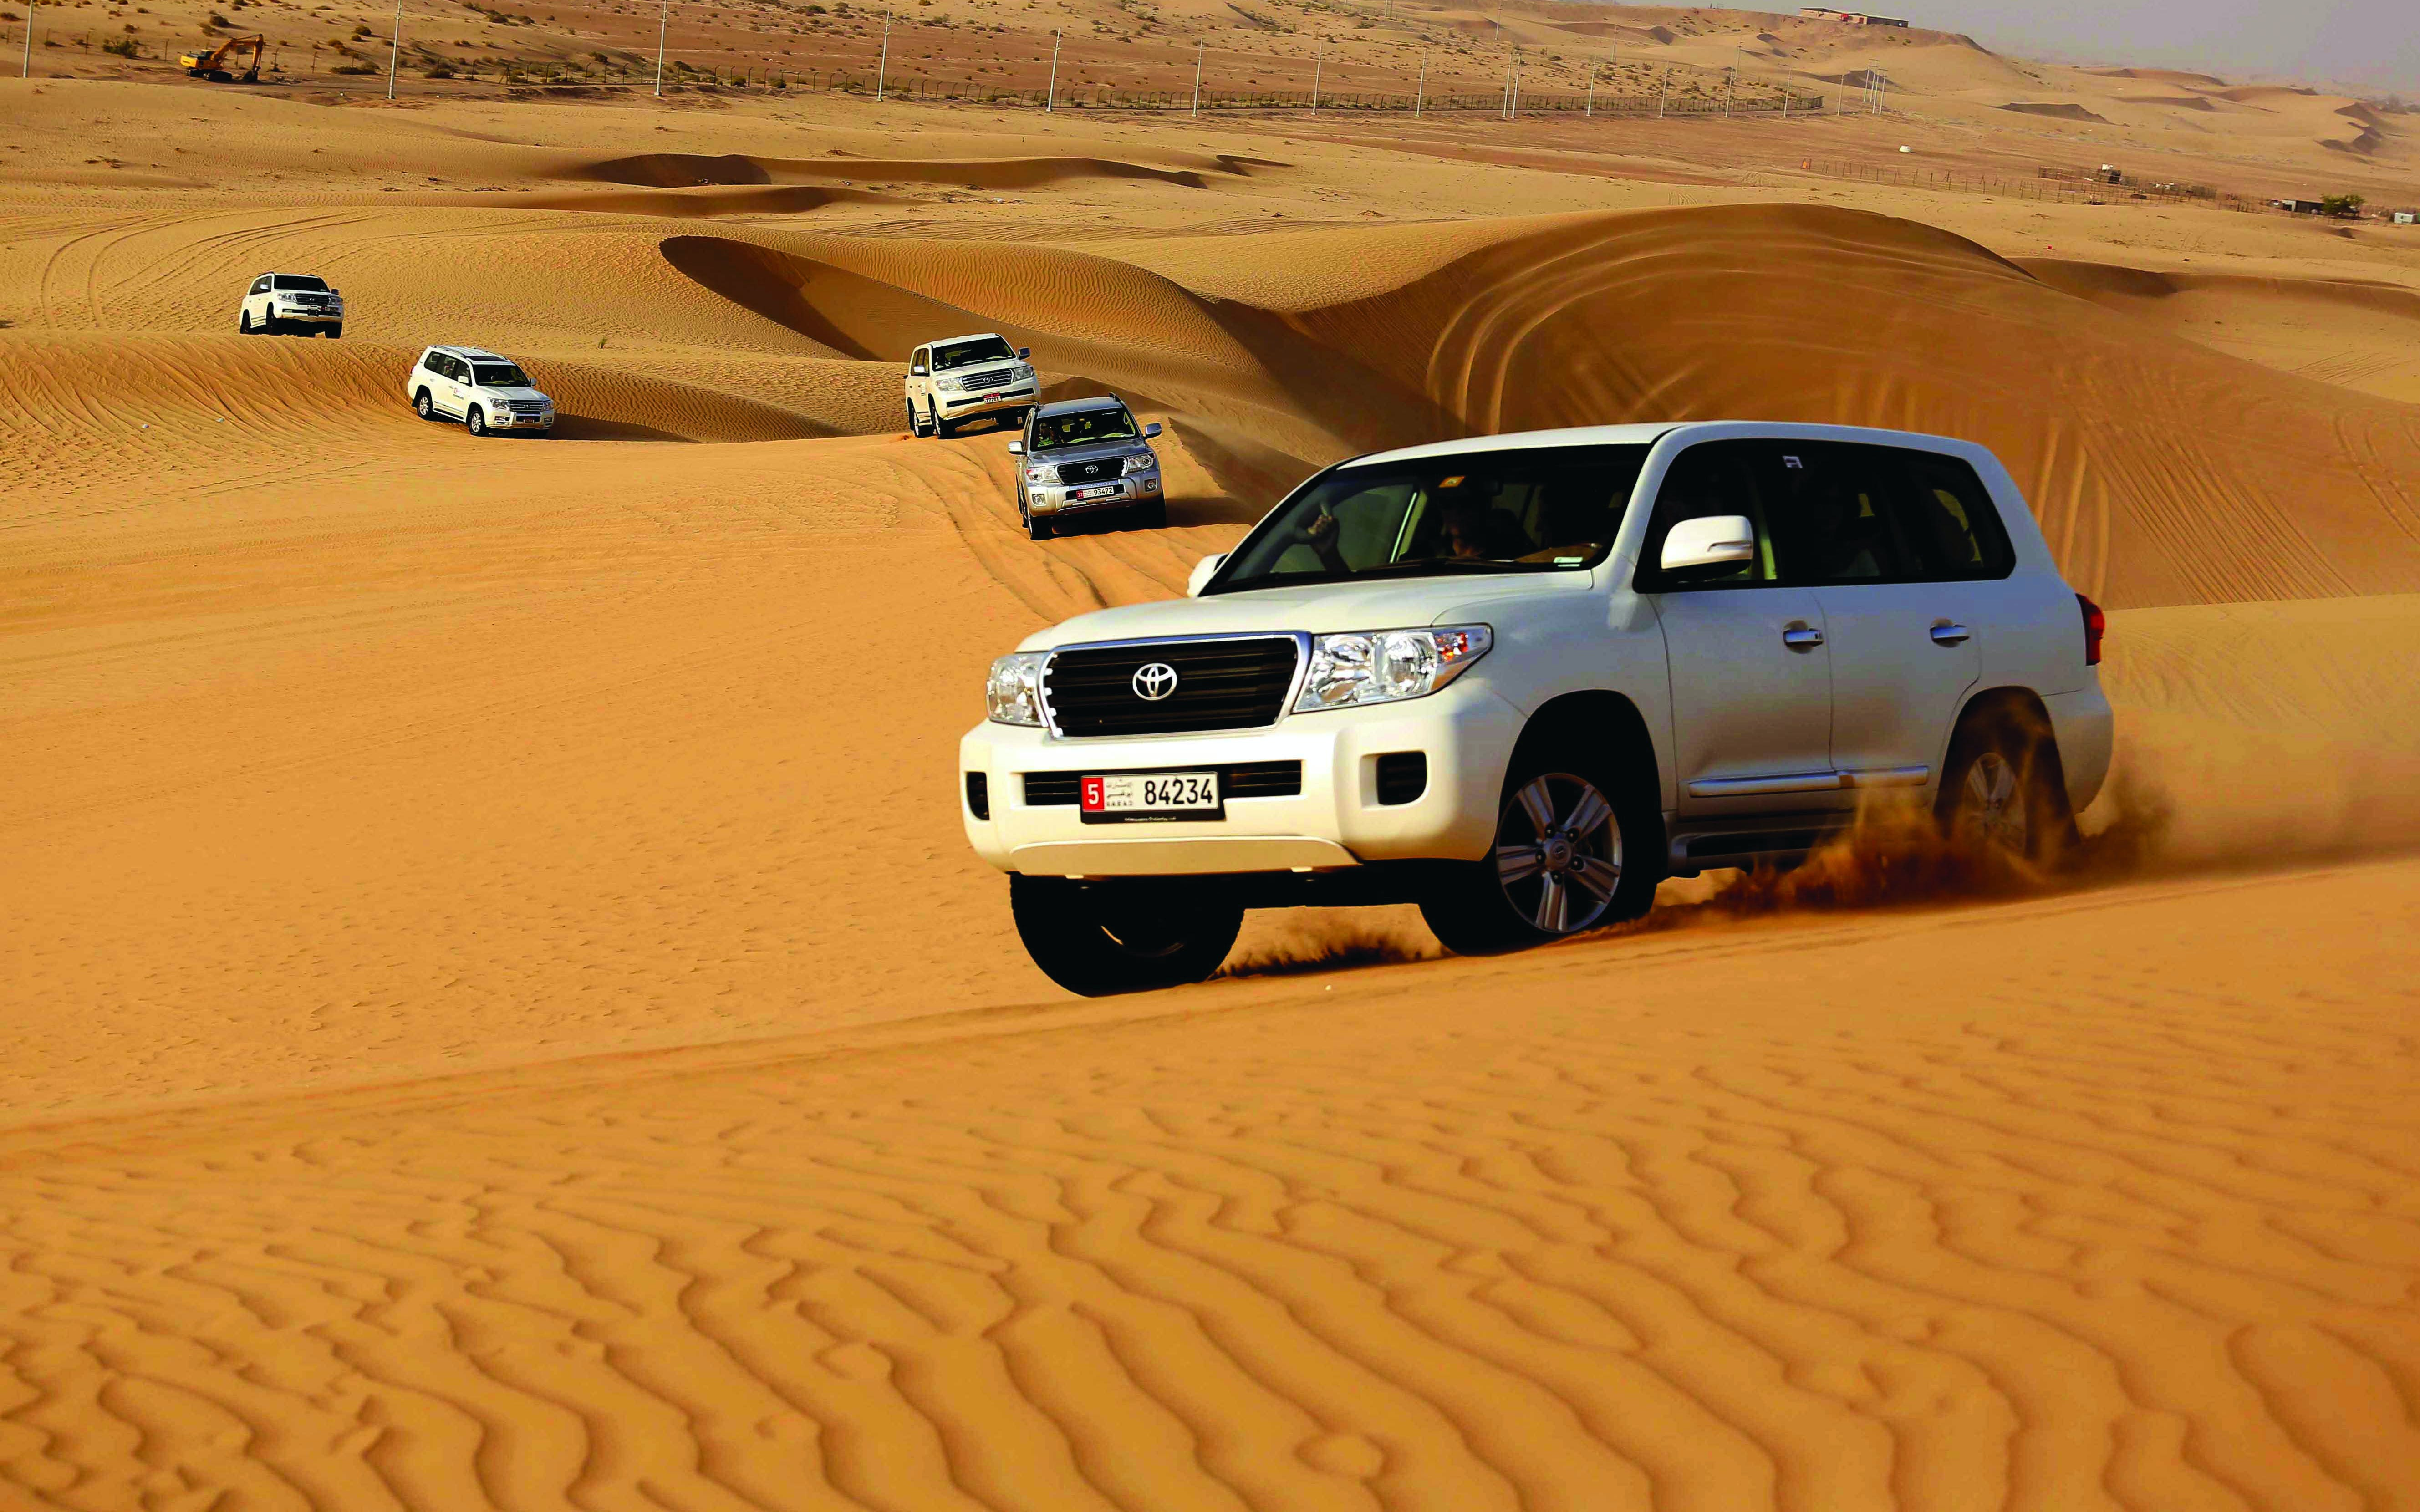 Luxury VIP Desert Safari